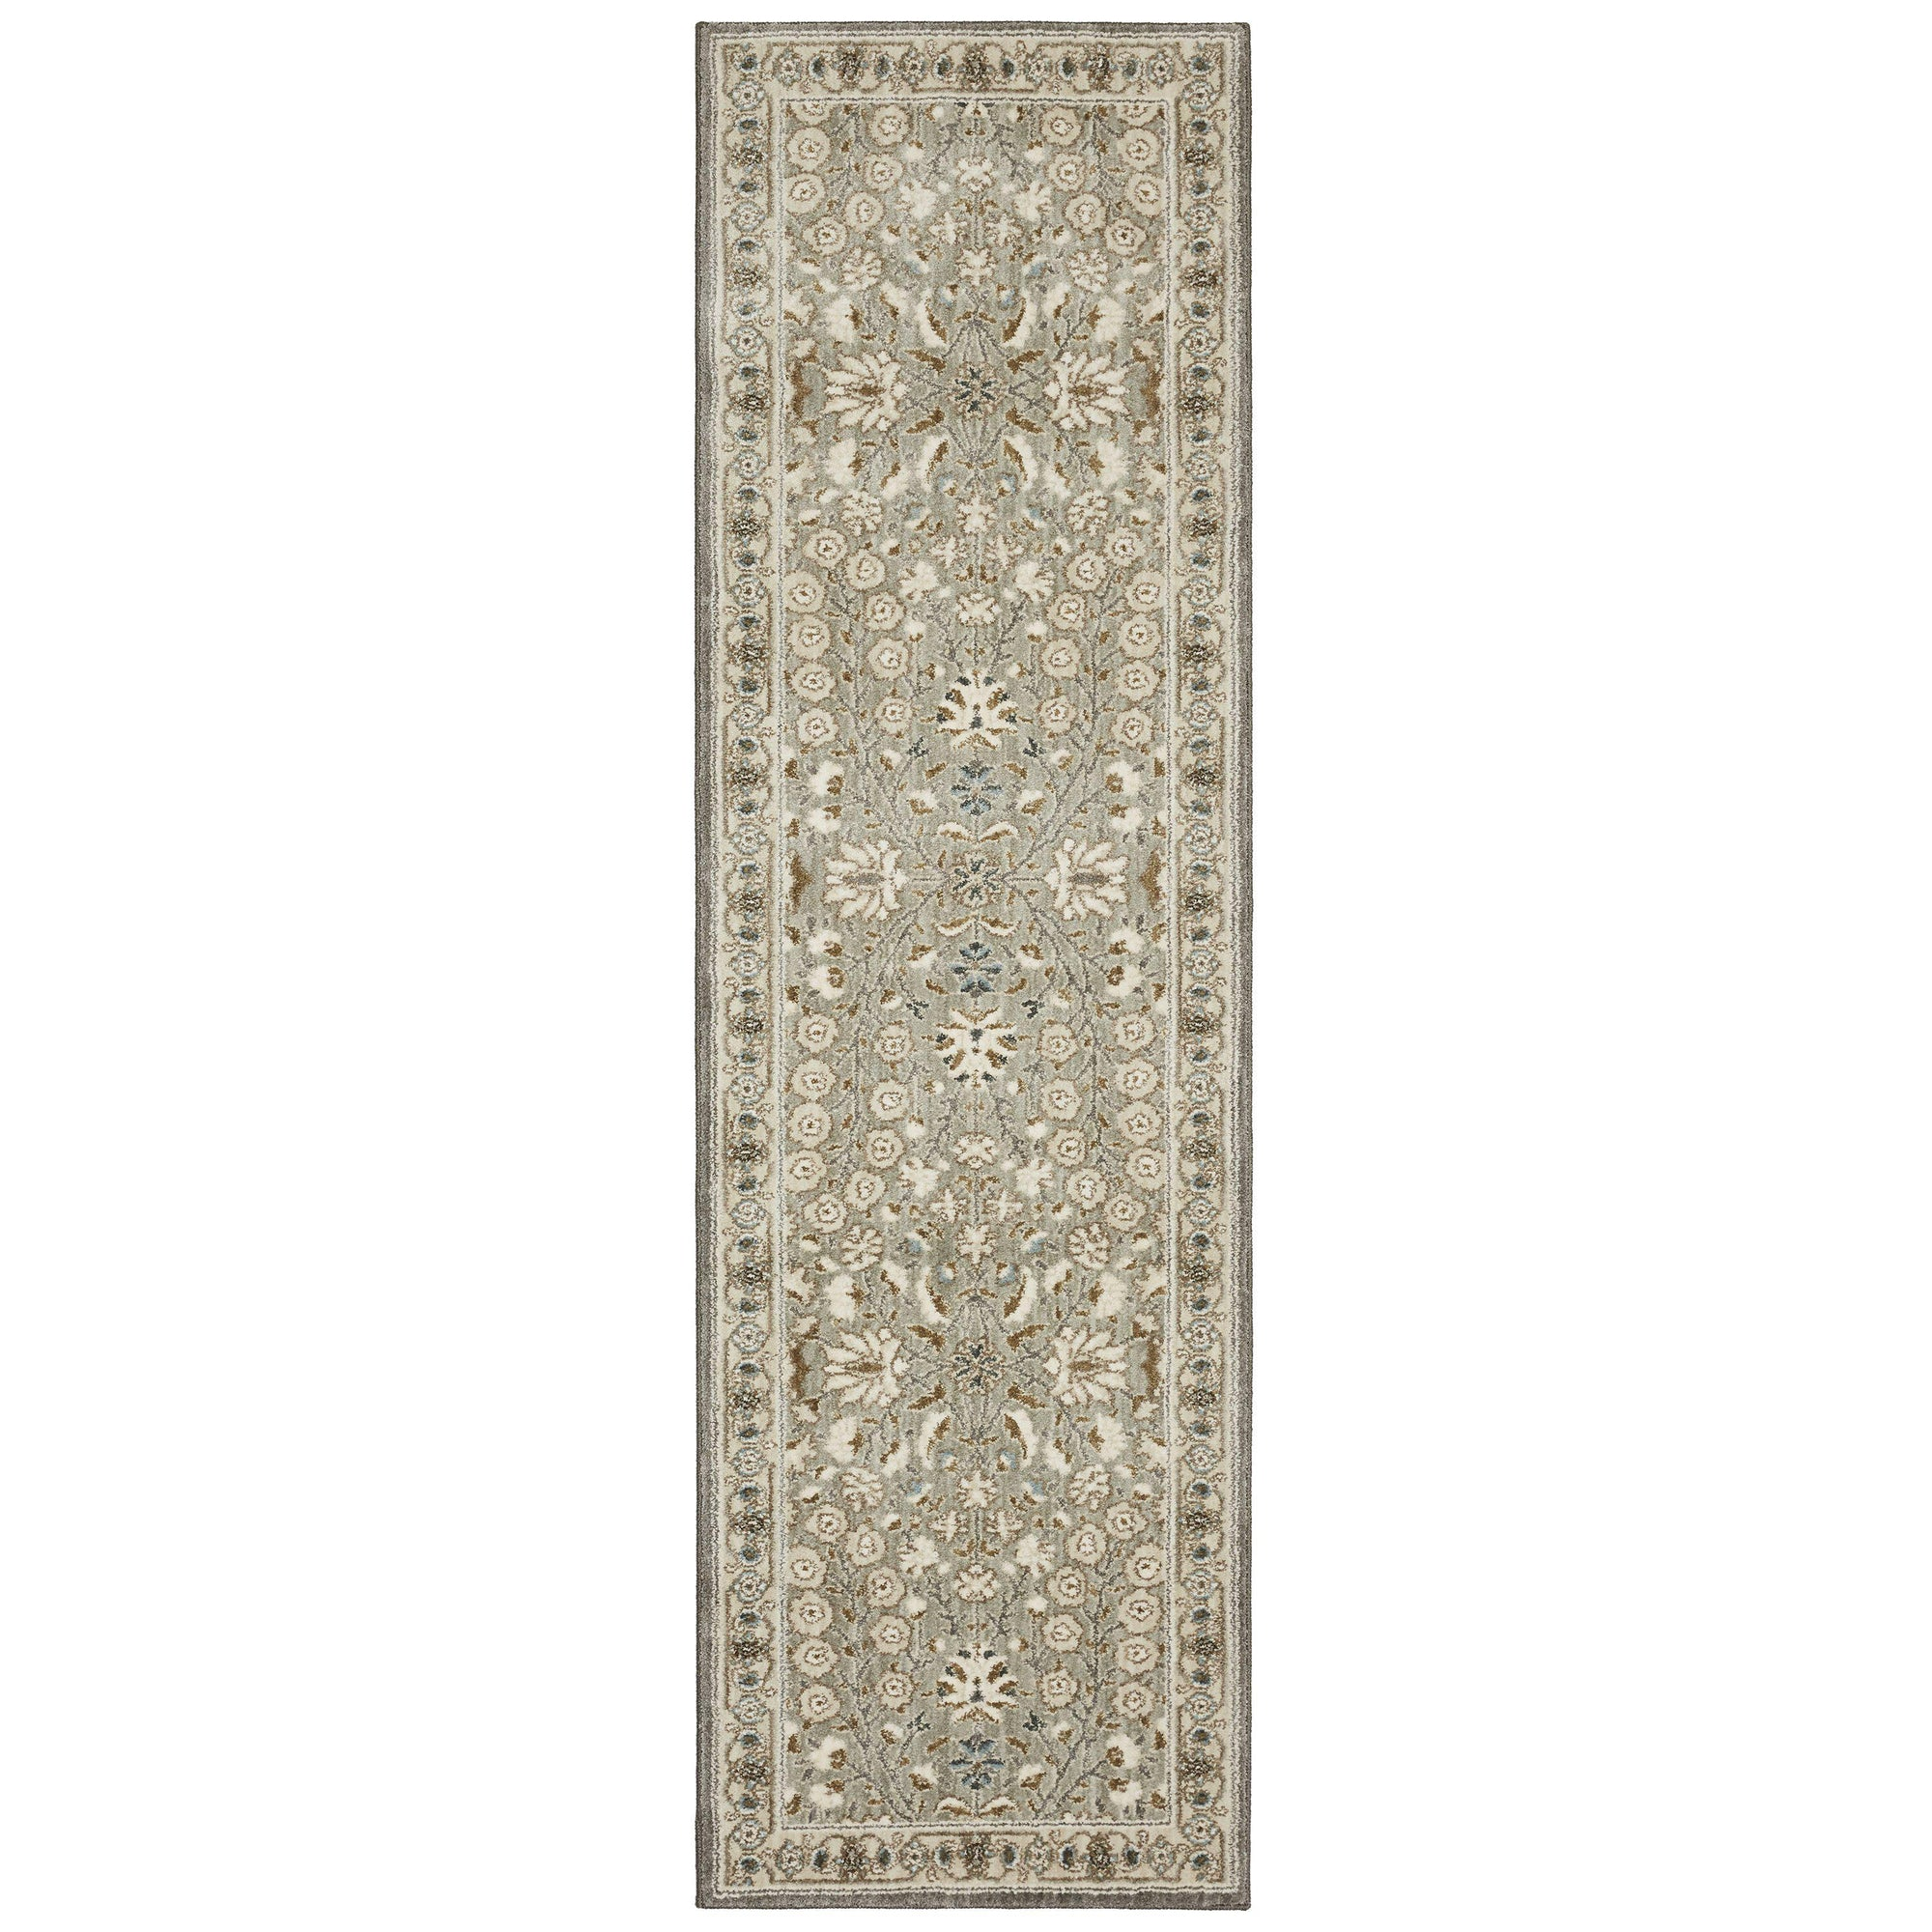 "Karastan Touchstone Sannox Willow Grey-Area Rug-Karastan-3' 6""x5' 6""-The Rug Truck"